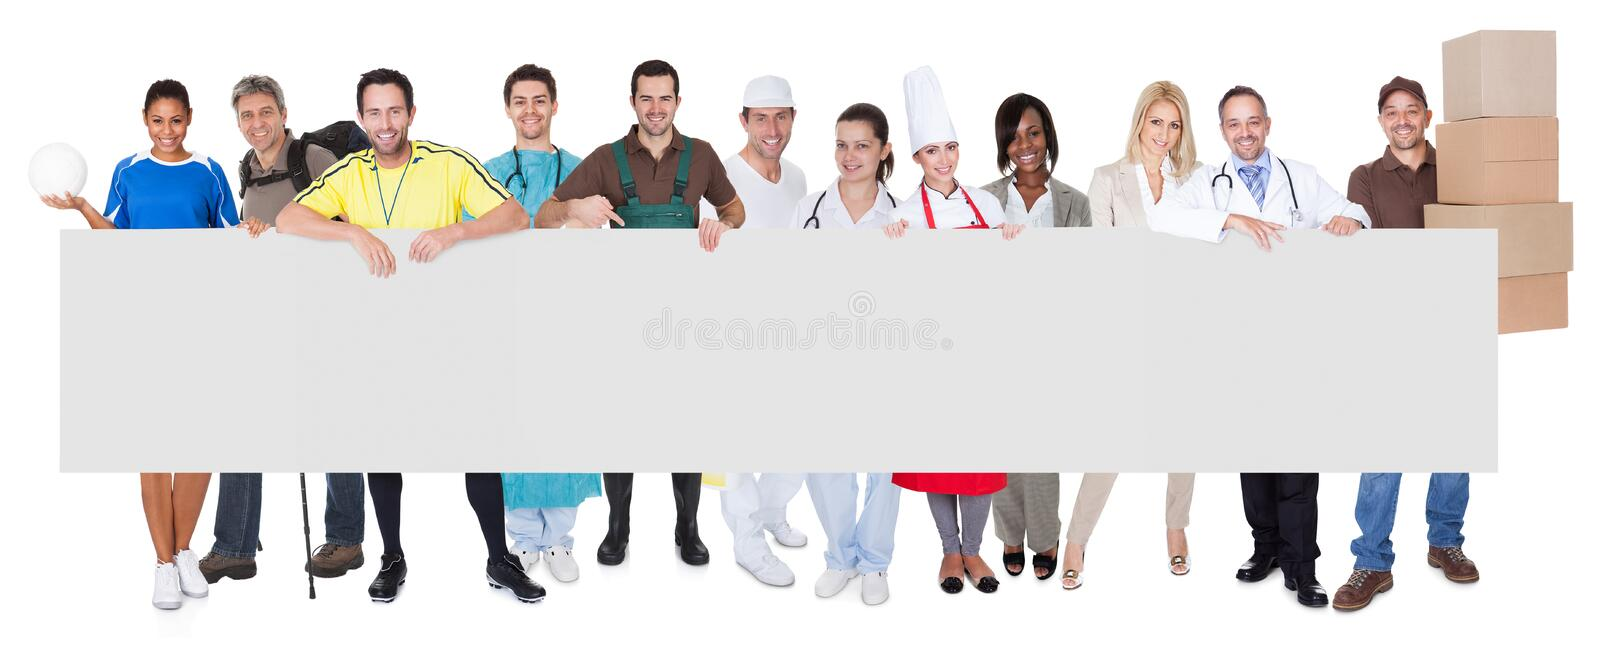 Group of diverse professionals stock photos